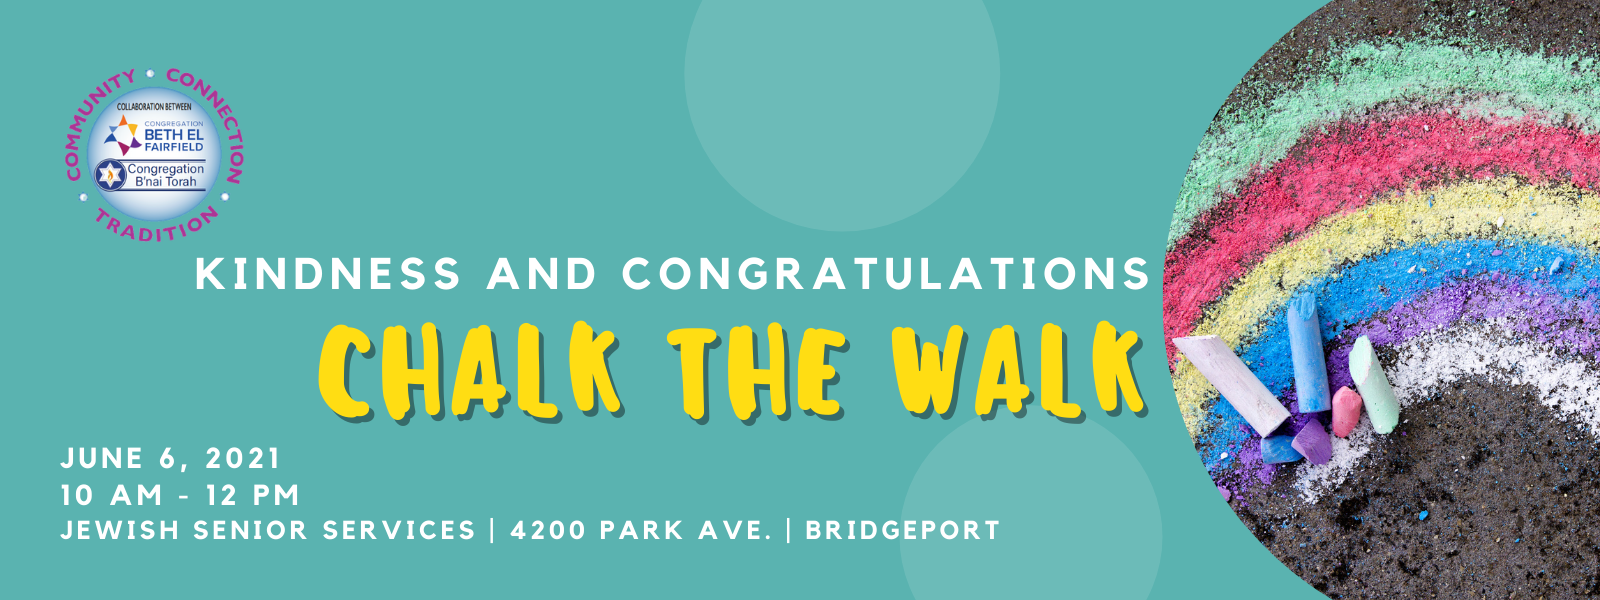 Banner Image for Chalk the Walk - a BT/BE Collaboration Event